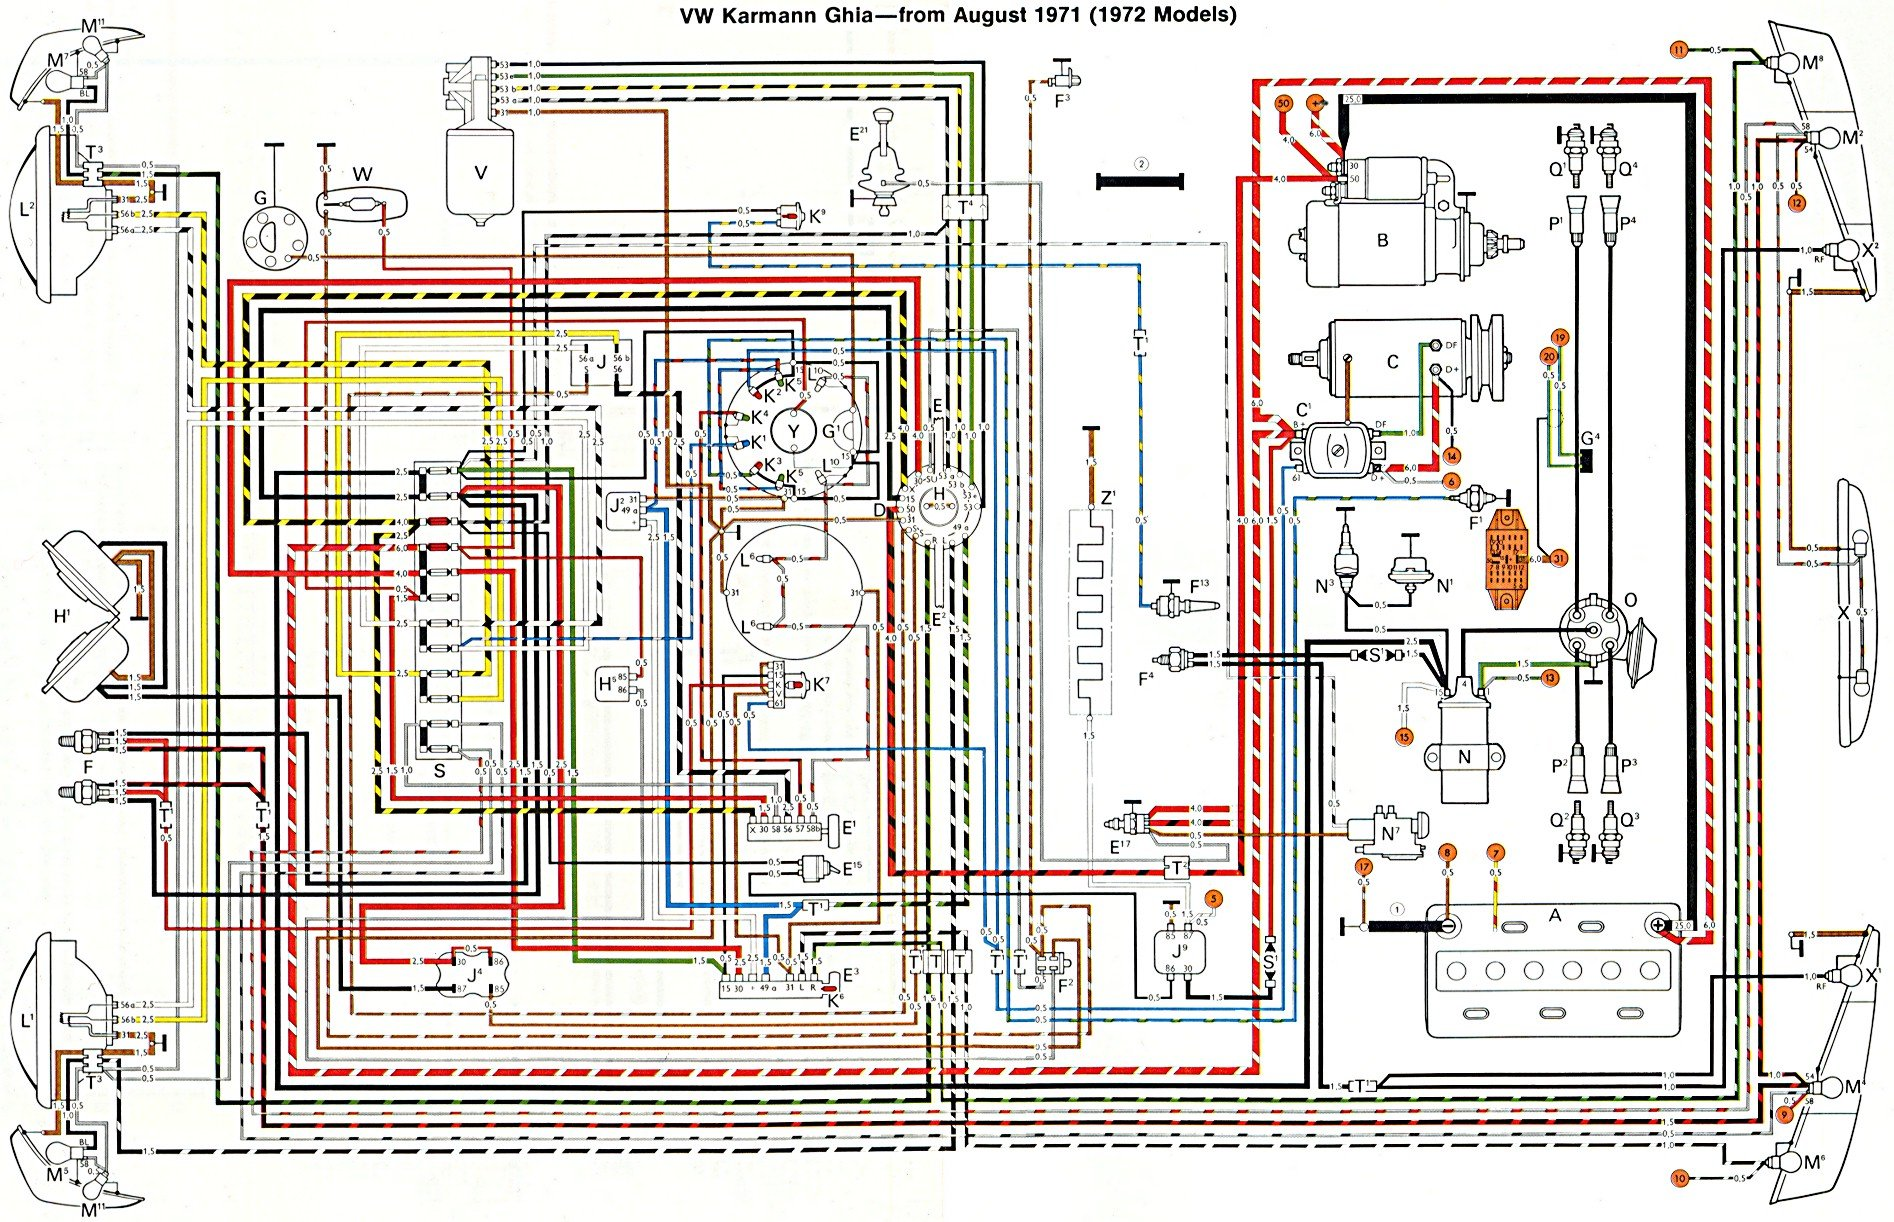 Karmann Ghia Wiring Diagrams 73 Camaro Engine Diagram